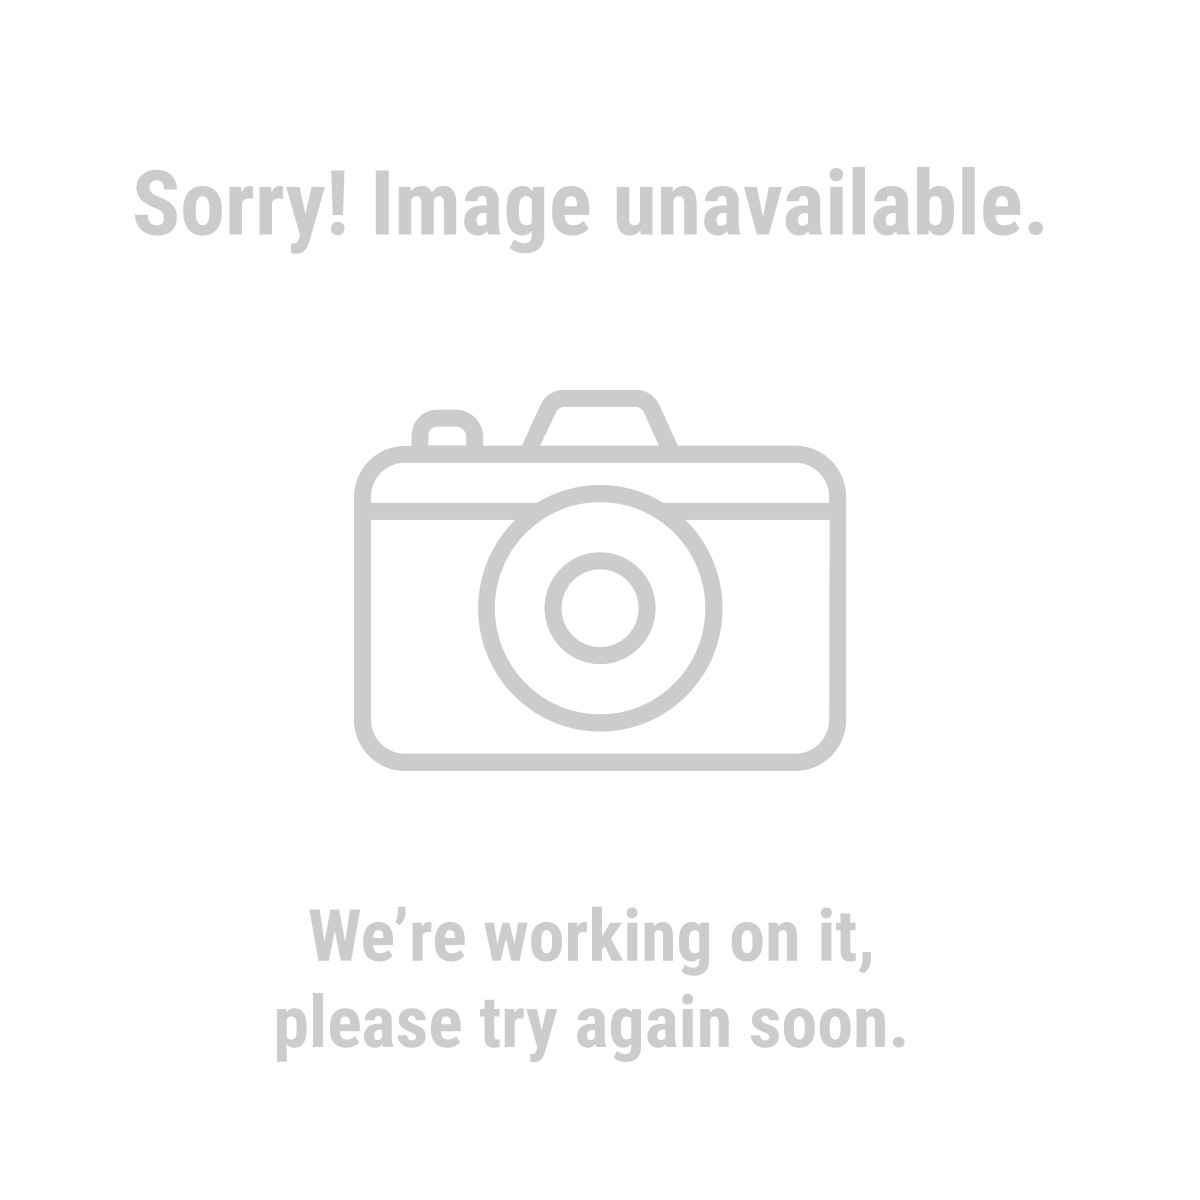 Storehouse® 93198 15 Bin Storage Rack